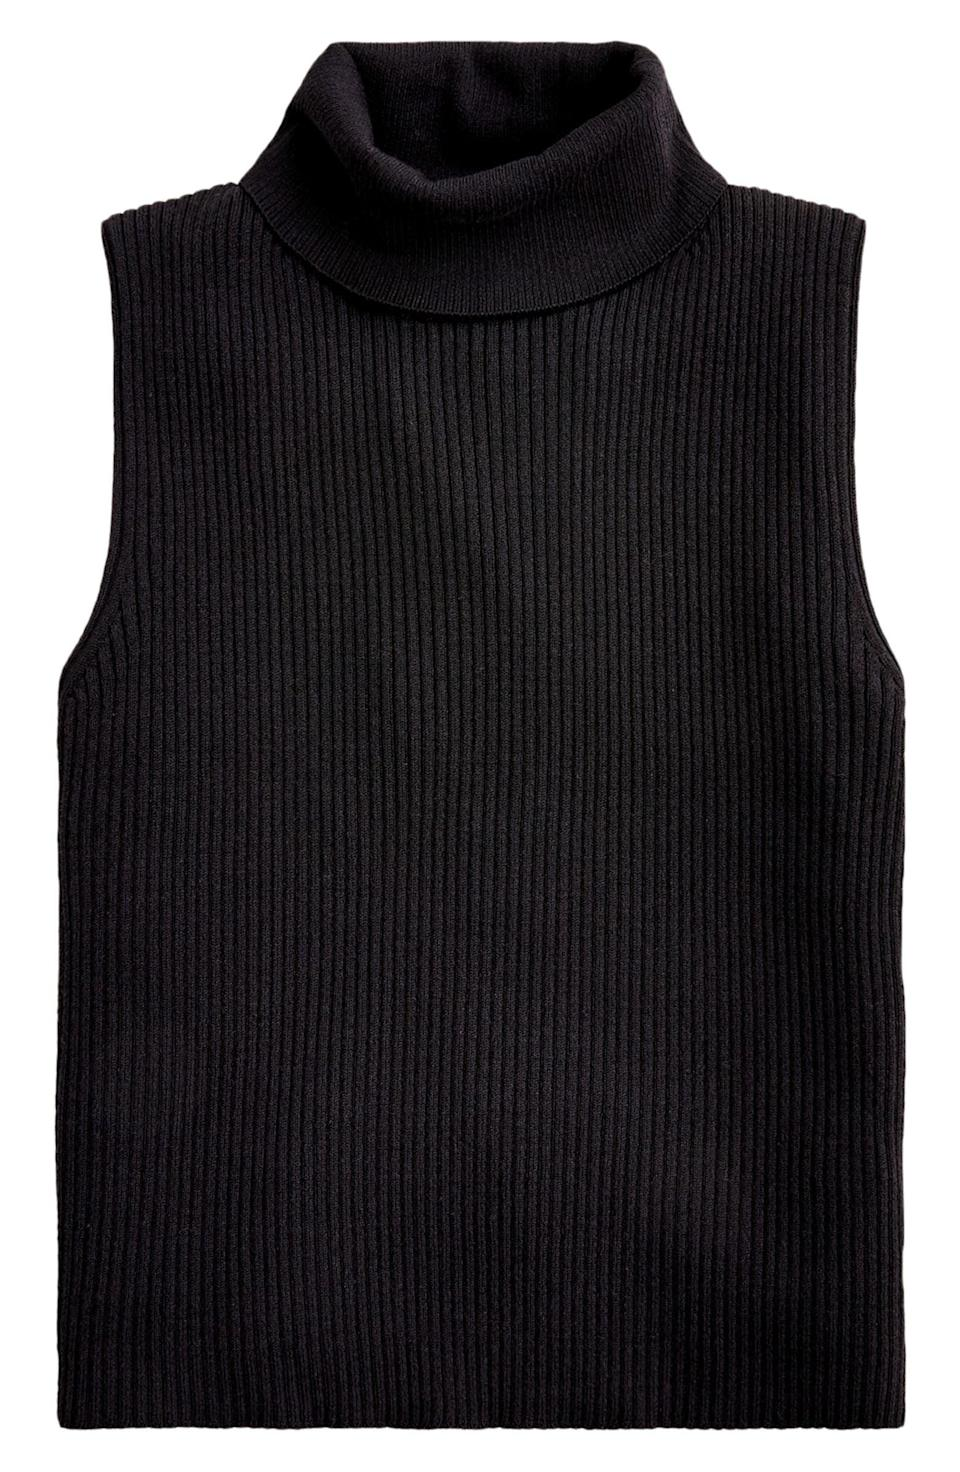 <p>Wear this <span>J.Crew Ribbed Turtleneck Sweater Tank</span> ($60) over your favorite blouse for a sophisticated layered look.</p>